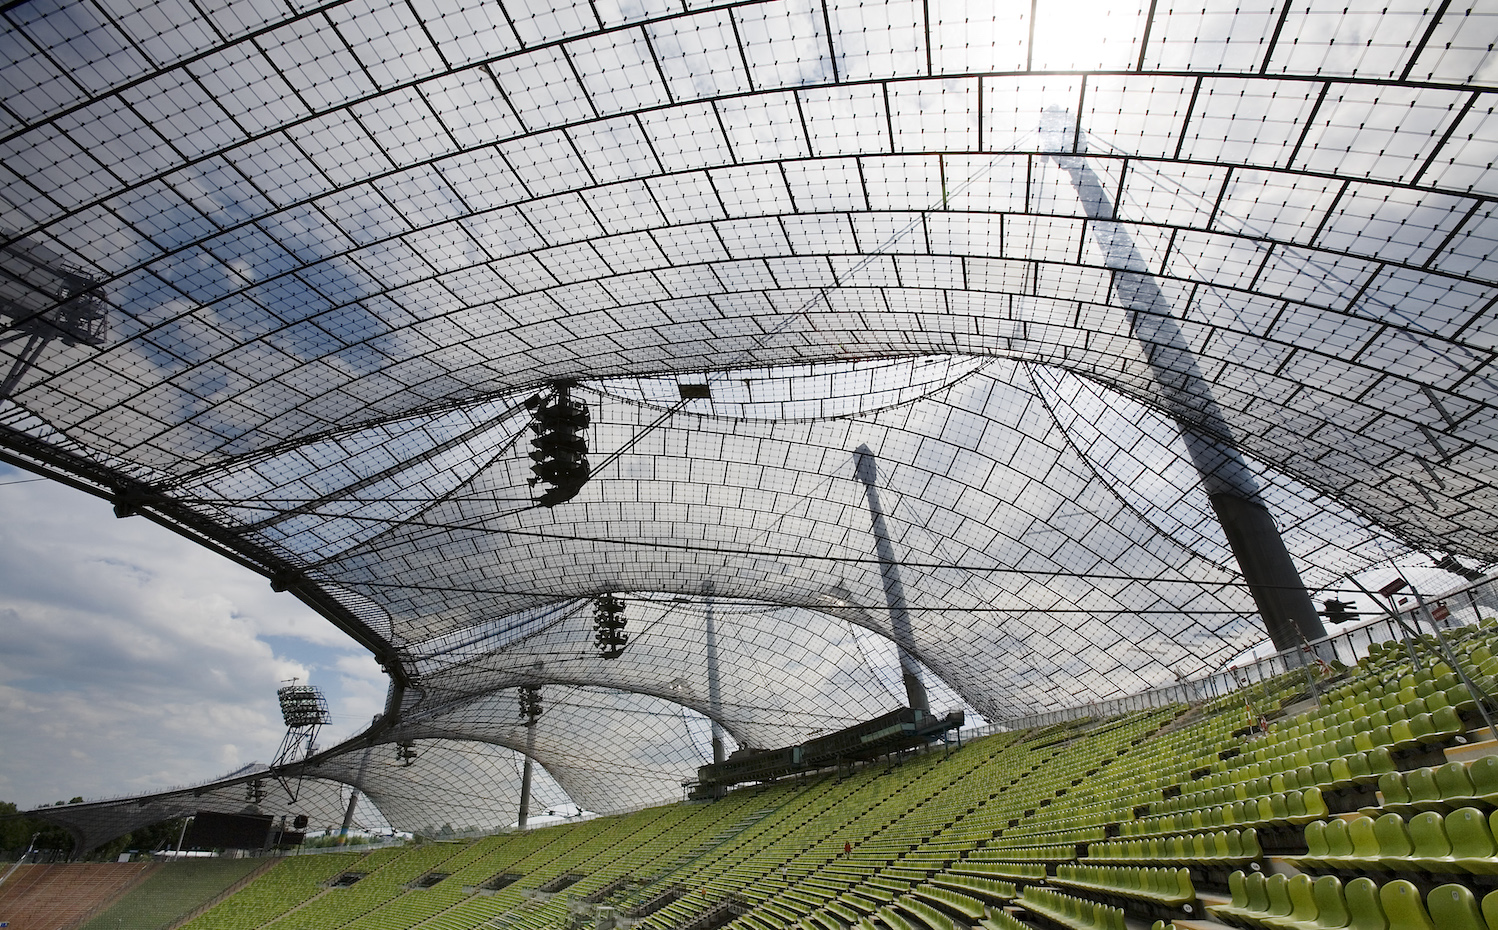 Architecture Frei Otto Olympic Stadium Park Germany steel brace braced pulley arena infield seating spectator spectators stands grandstand detail structure mesh stretch stretched  webbing webbed woven tension tense tensed structure structures buildings ro